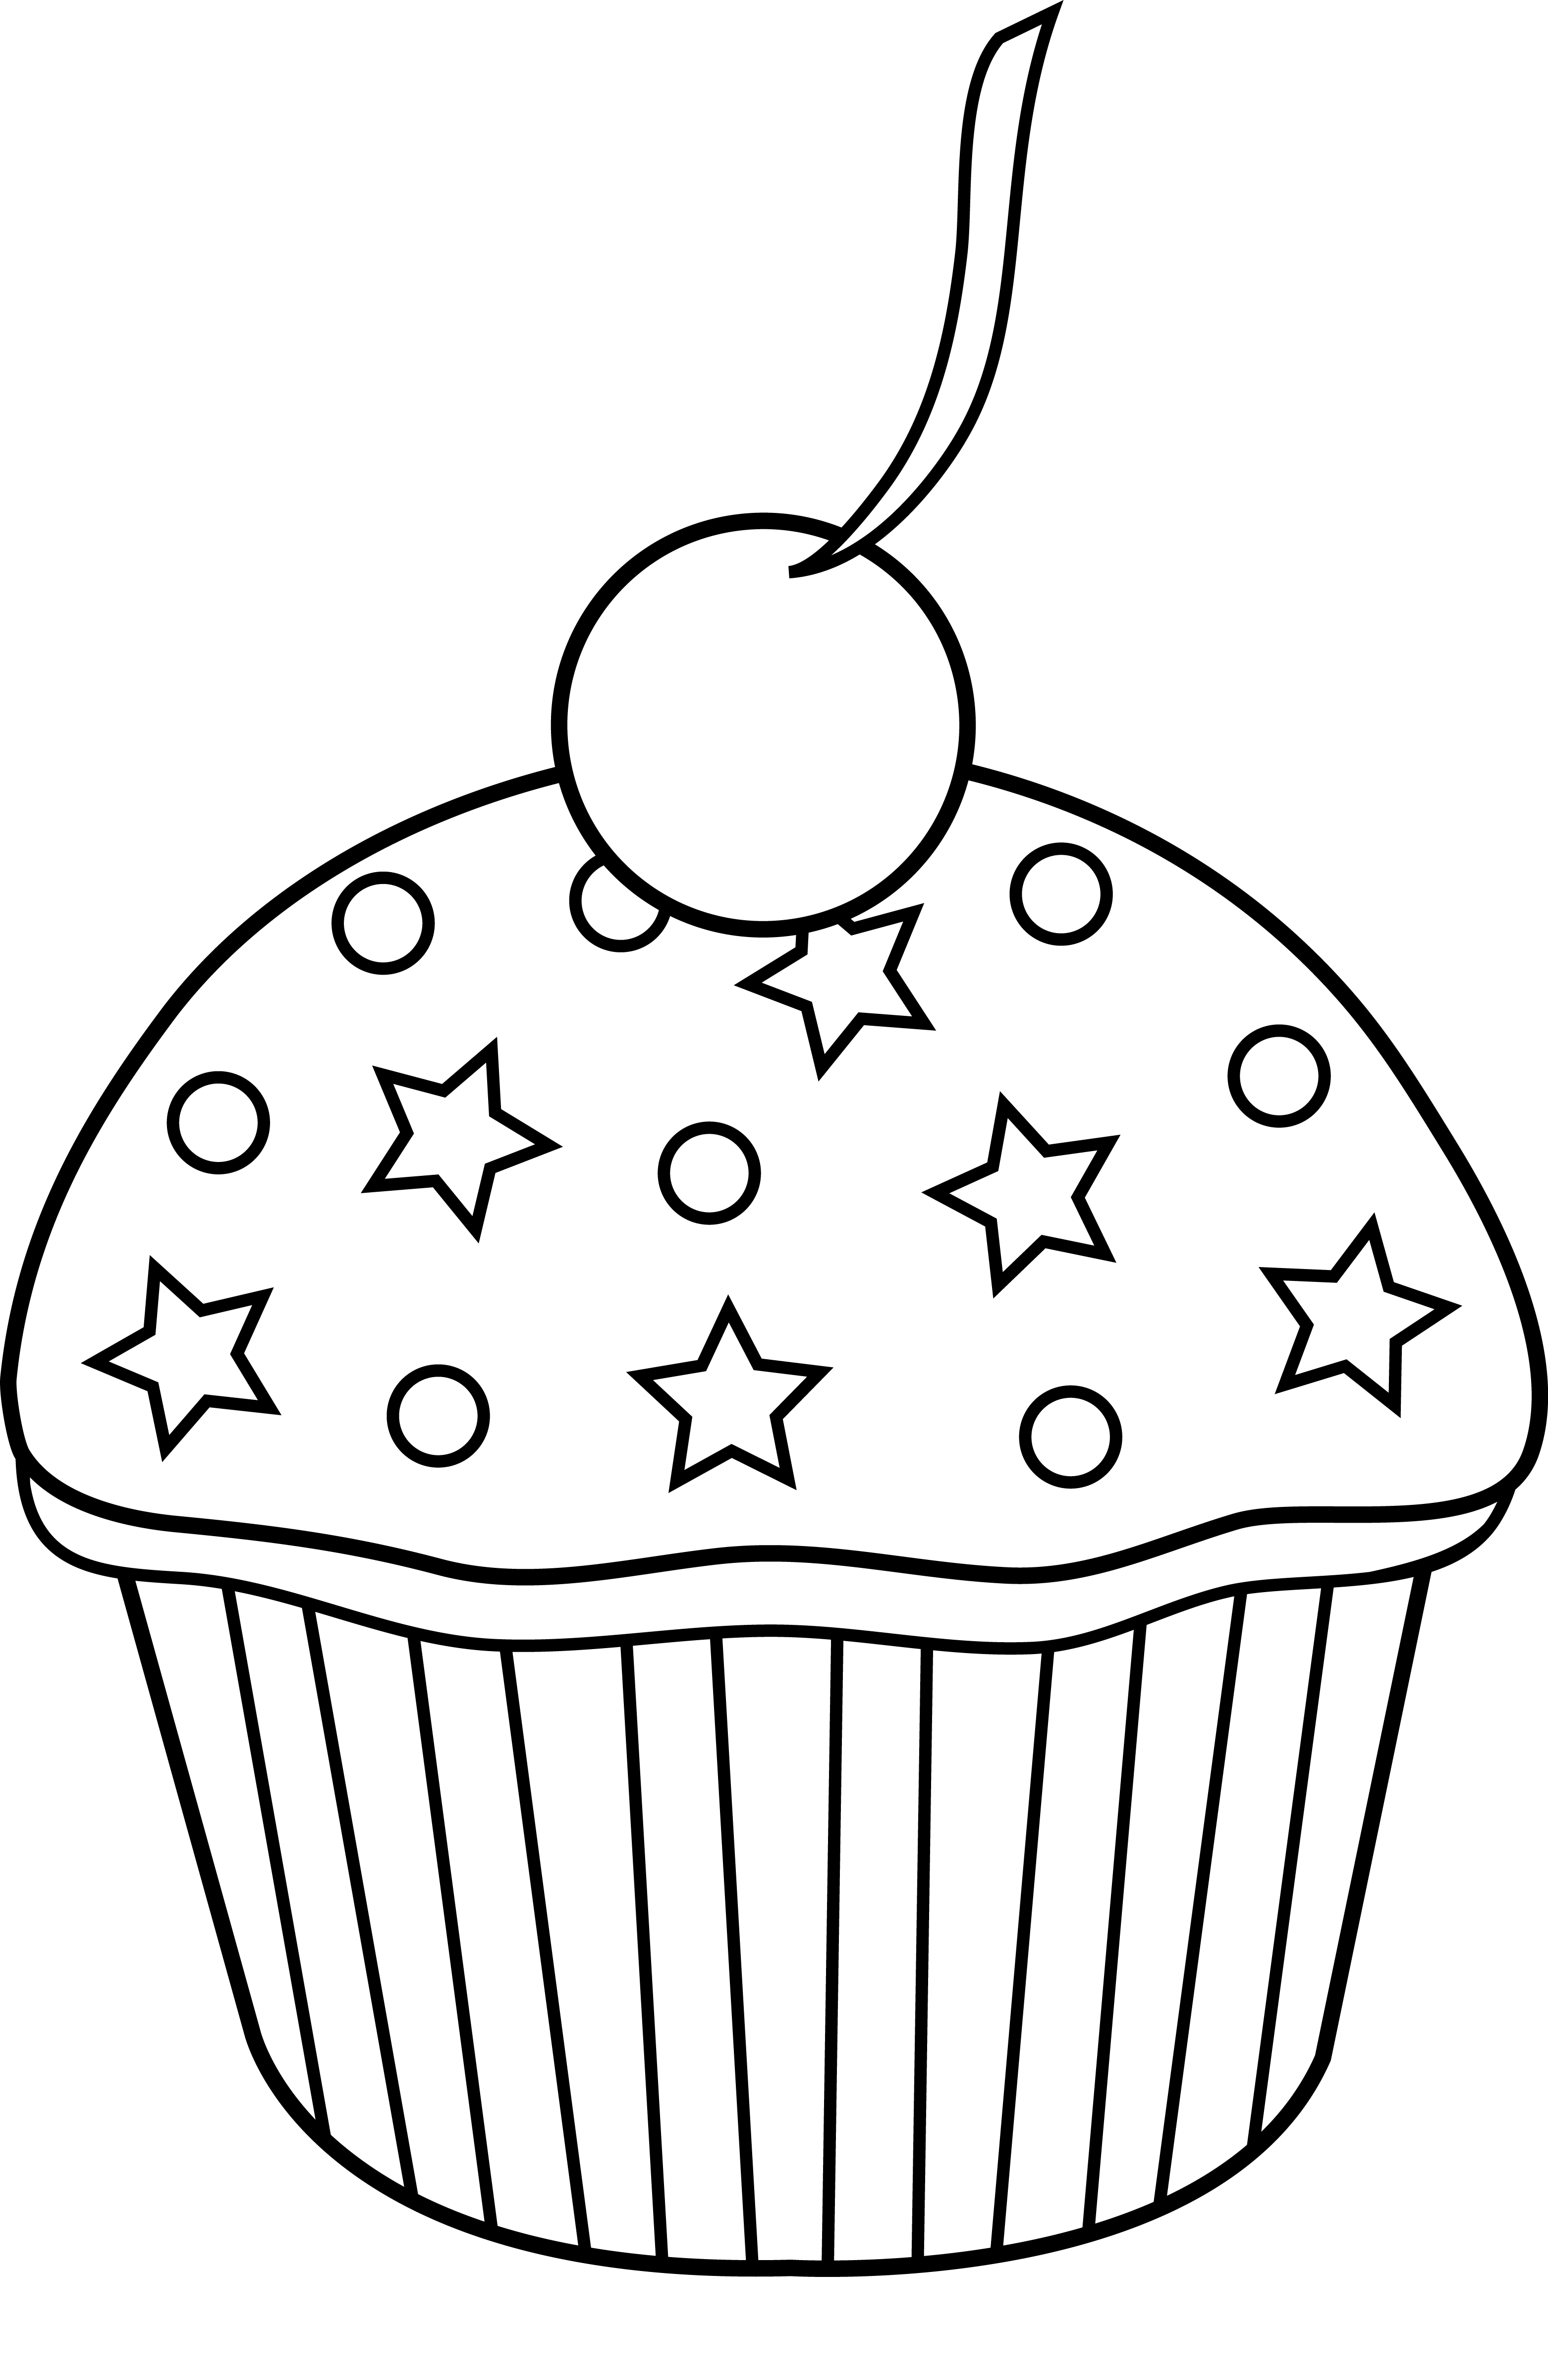 Sweet drawing simple. Cute cupcake outline to